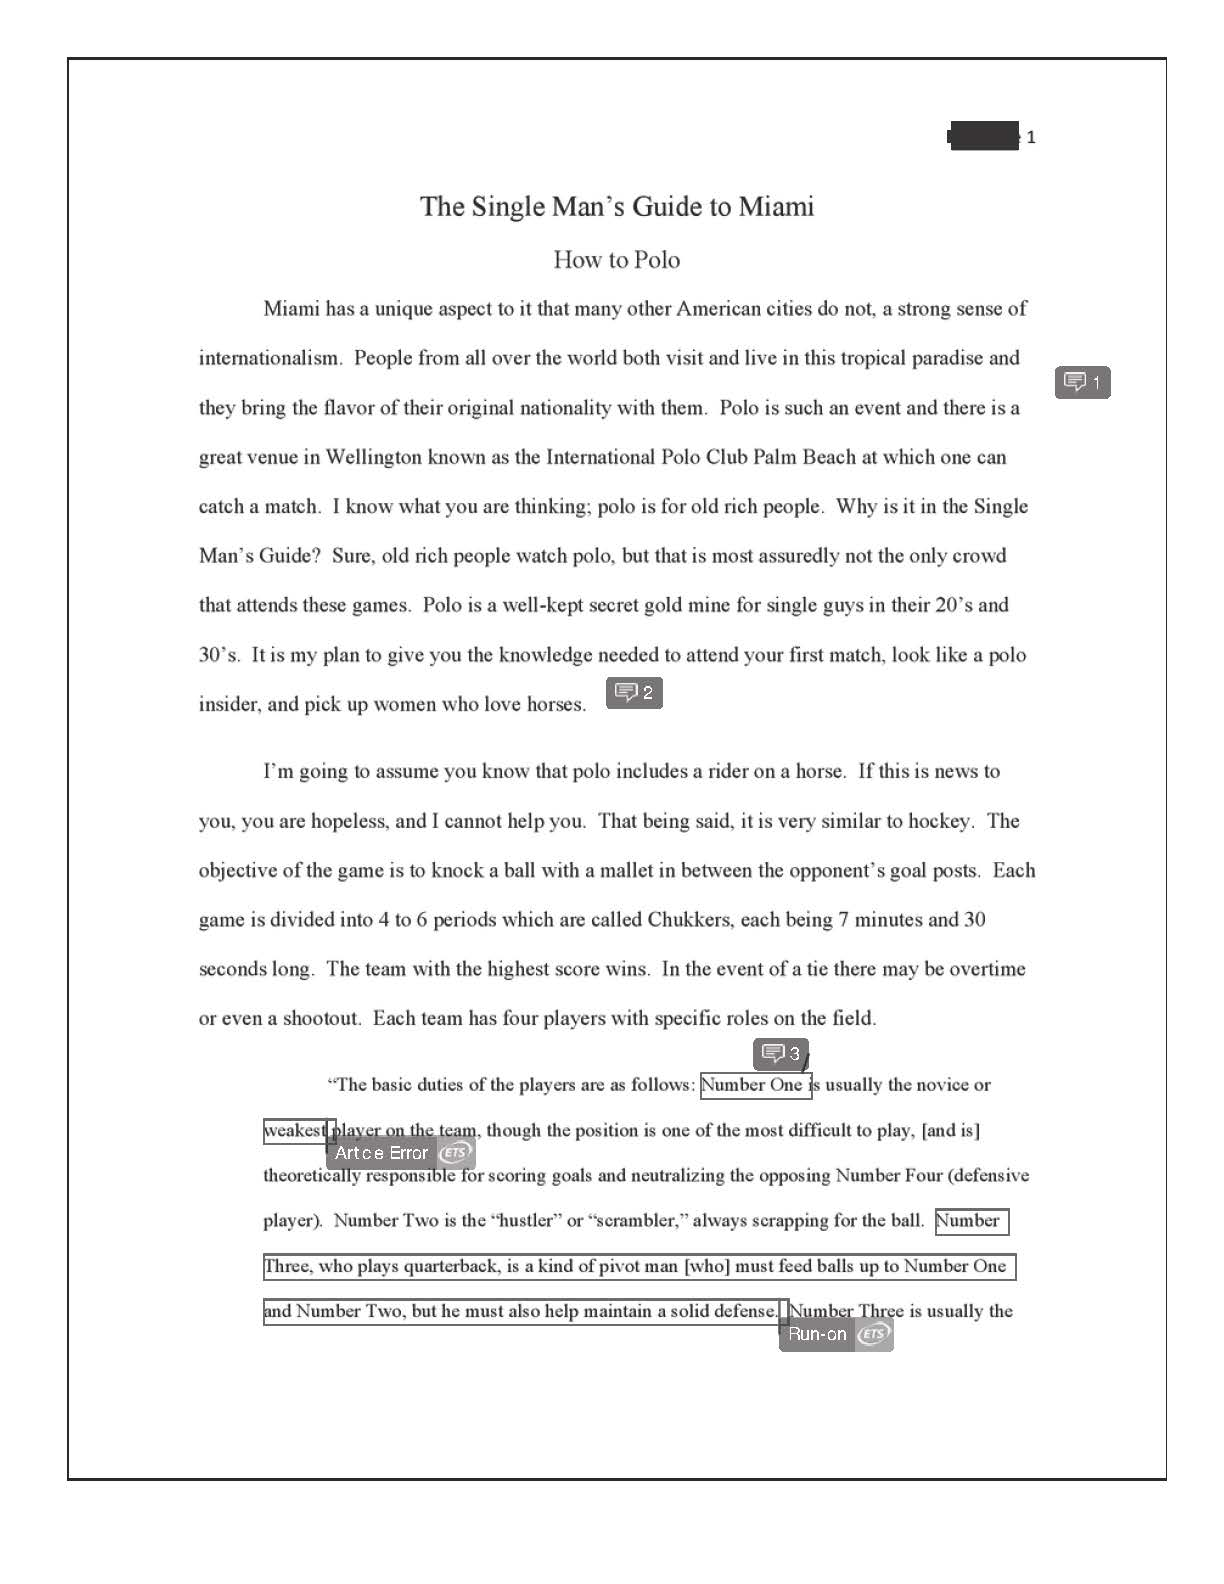 007 Essay Example Informational Informative Final How To Polo Redacted Page 2 Unforgettable Rubric 4th Grade Outline Explanatory Definition Full